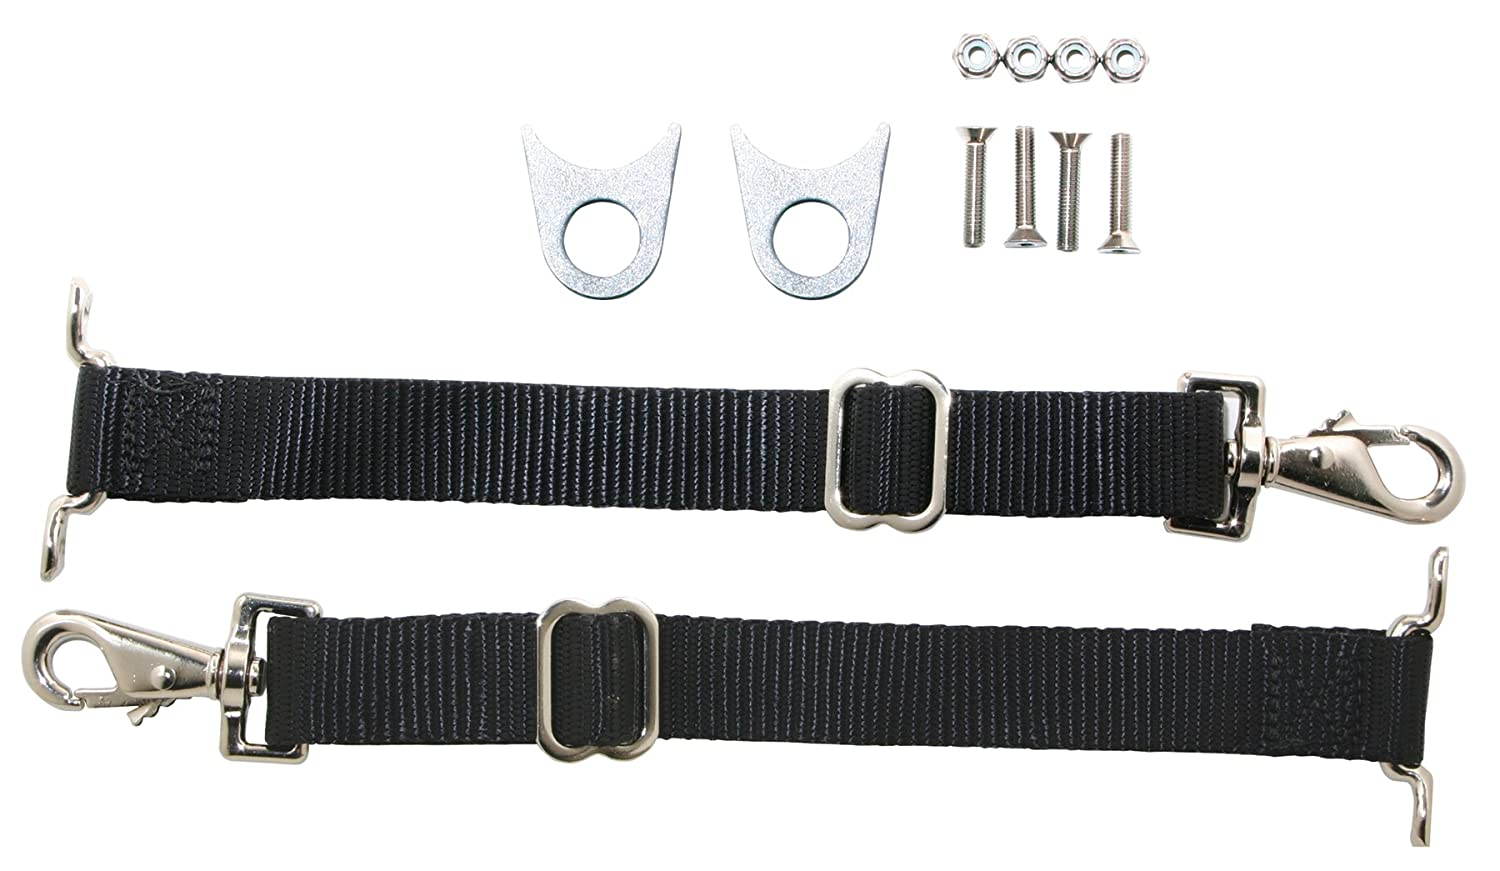 Amazon.com Competition Engineering C4931 Door Limiter Strap Kit Automotive  sc 1 st  Amazon.com & Amazon.com: Competition Engineering C4931 Door Limiter Strap Kit ... pezcame.com